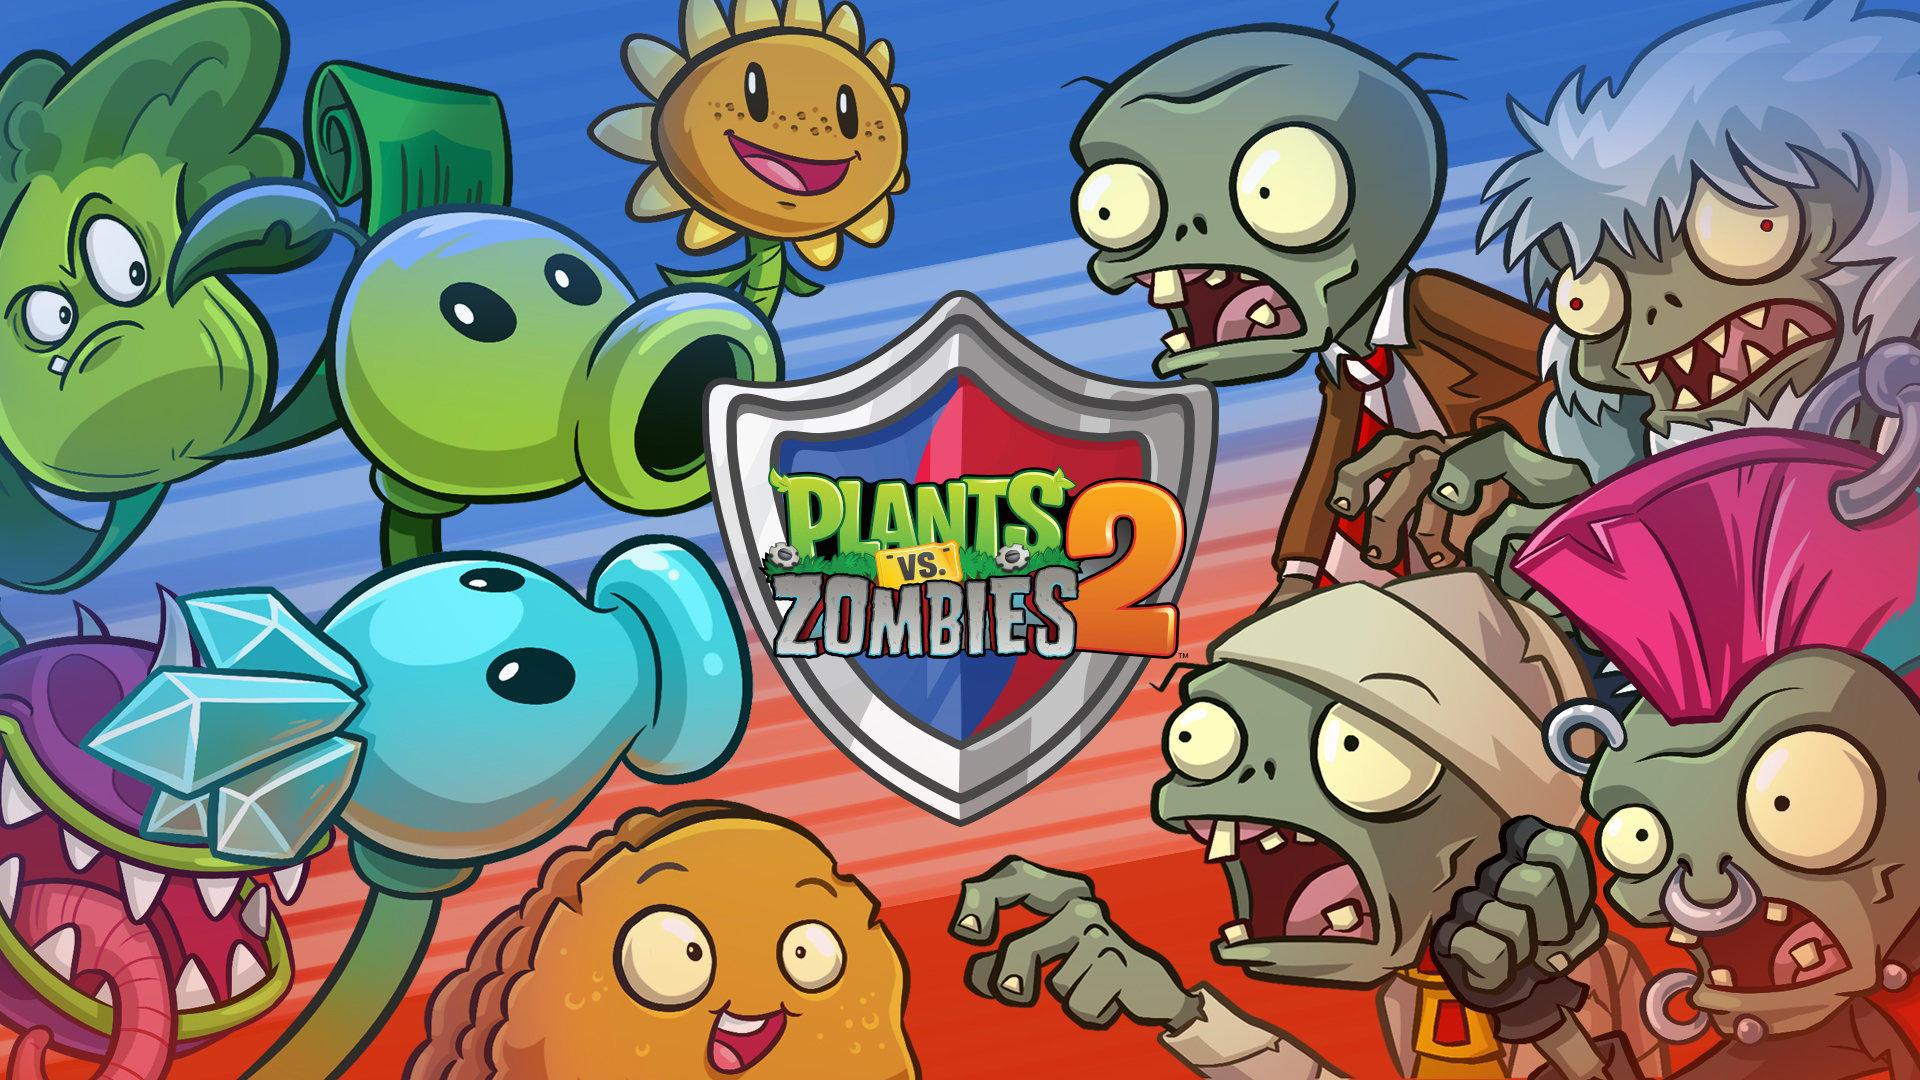 plan vs zombies iphone free game